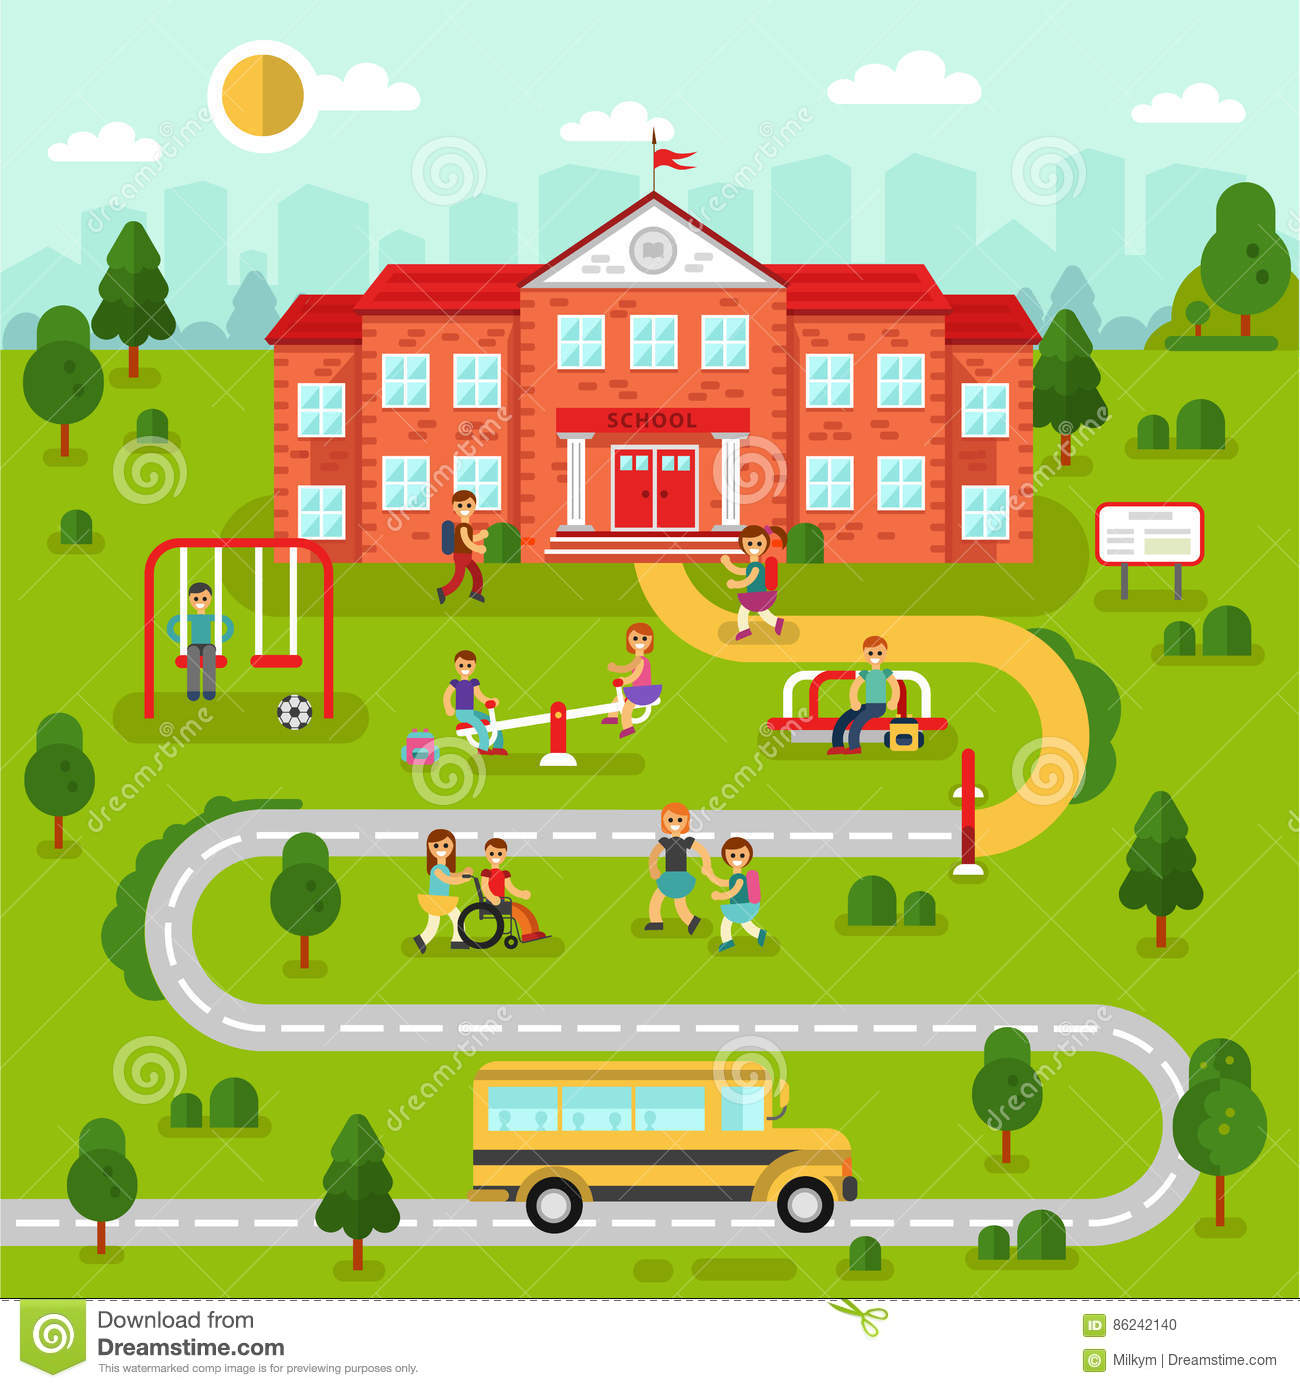 School map clipart 1 » Clipart Station.